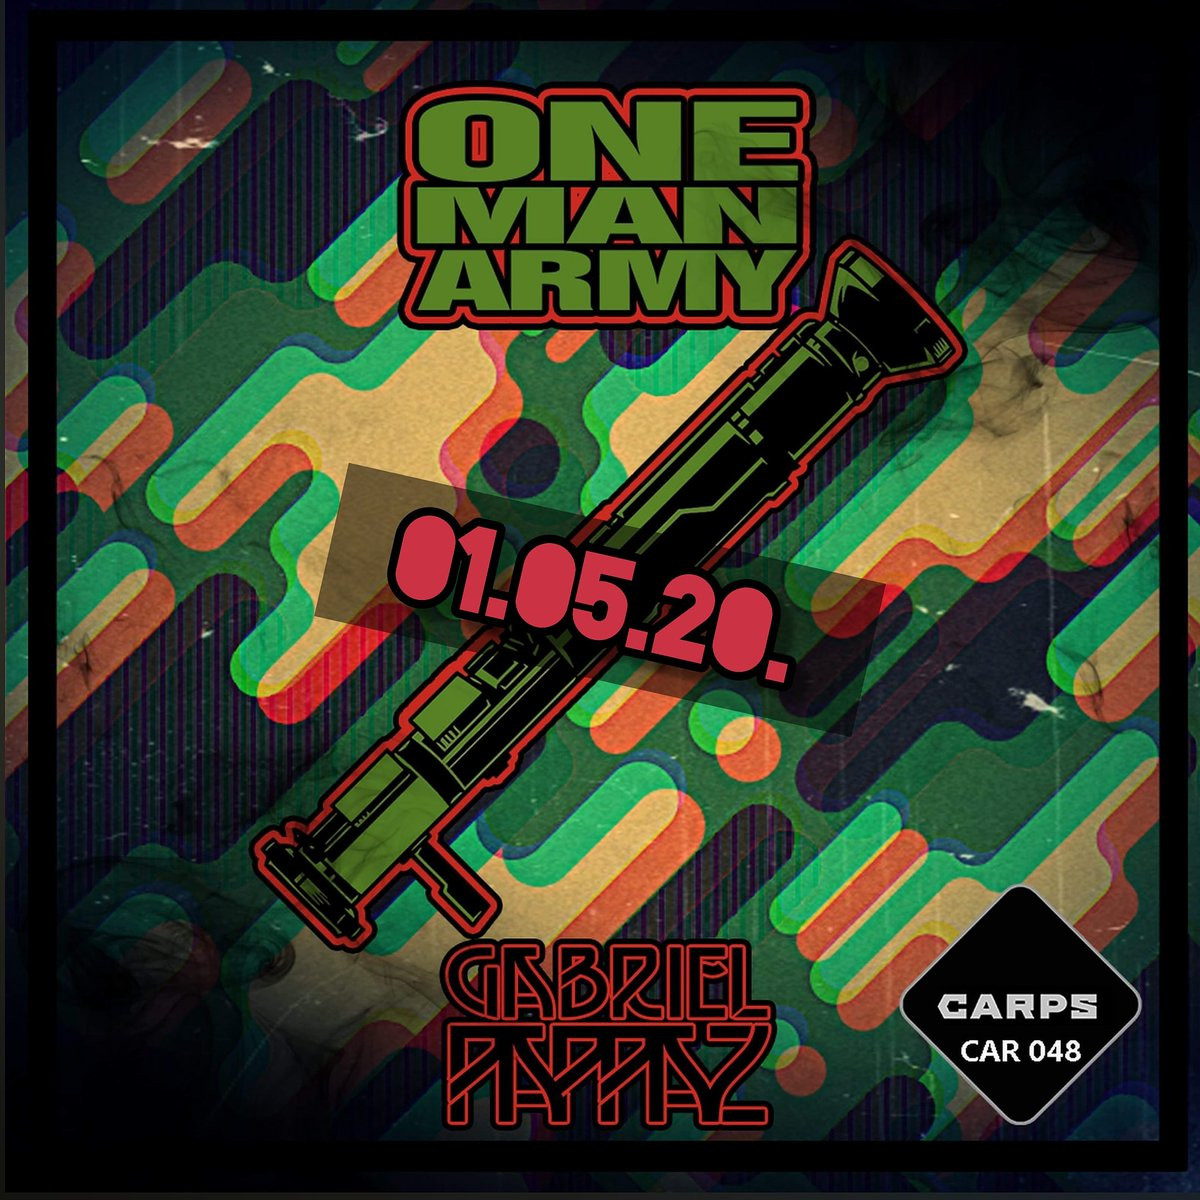 Release Artist:Gabriel Pappaz Release Title:One Man Army Catalogue Number: CAR048 Label: CARPS Release Type: Single Release time: 01 May 2020. #techno #technomusic #technoproducer #rave #acidtechno #acid #onemanarmypic.twitter.com/ookPWTZhjn